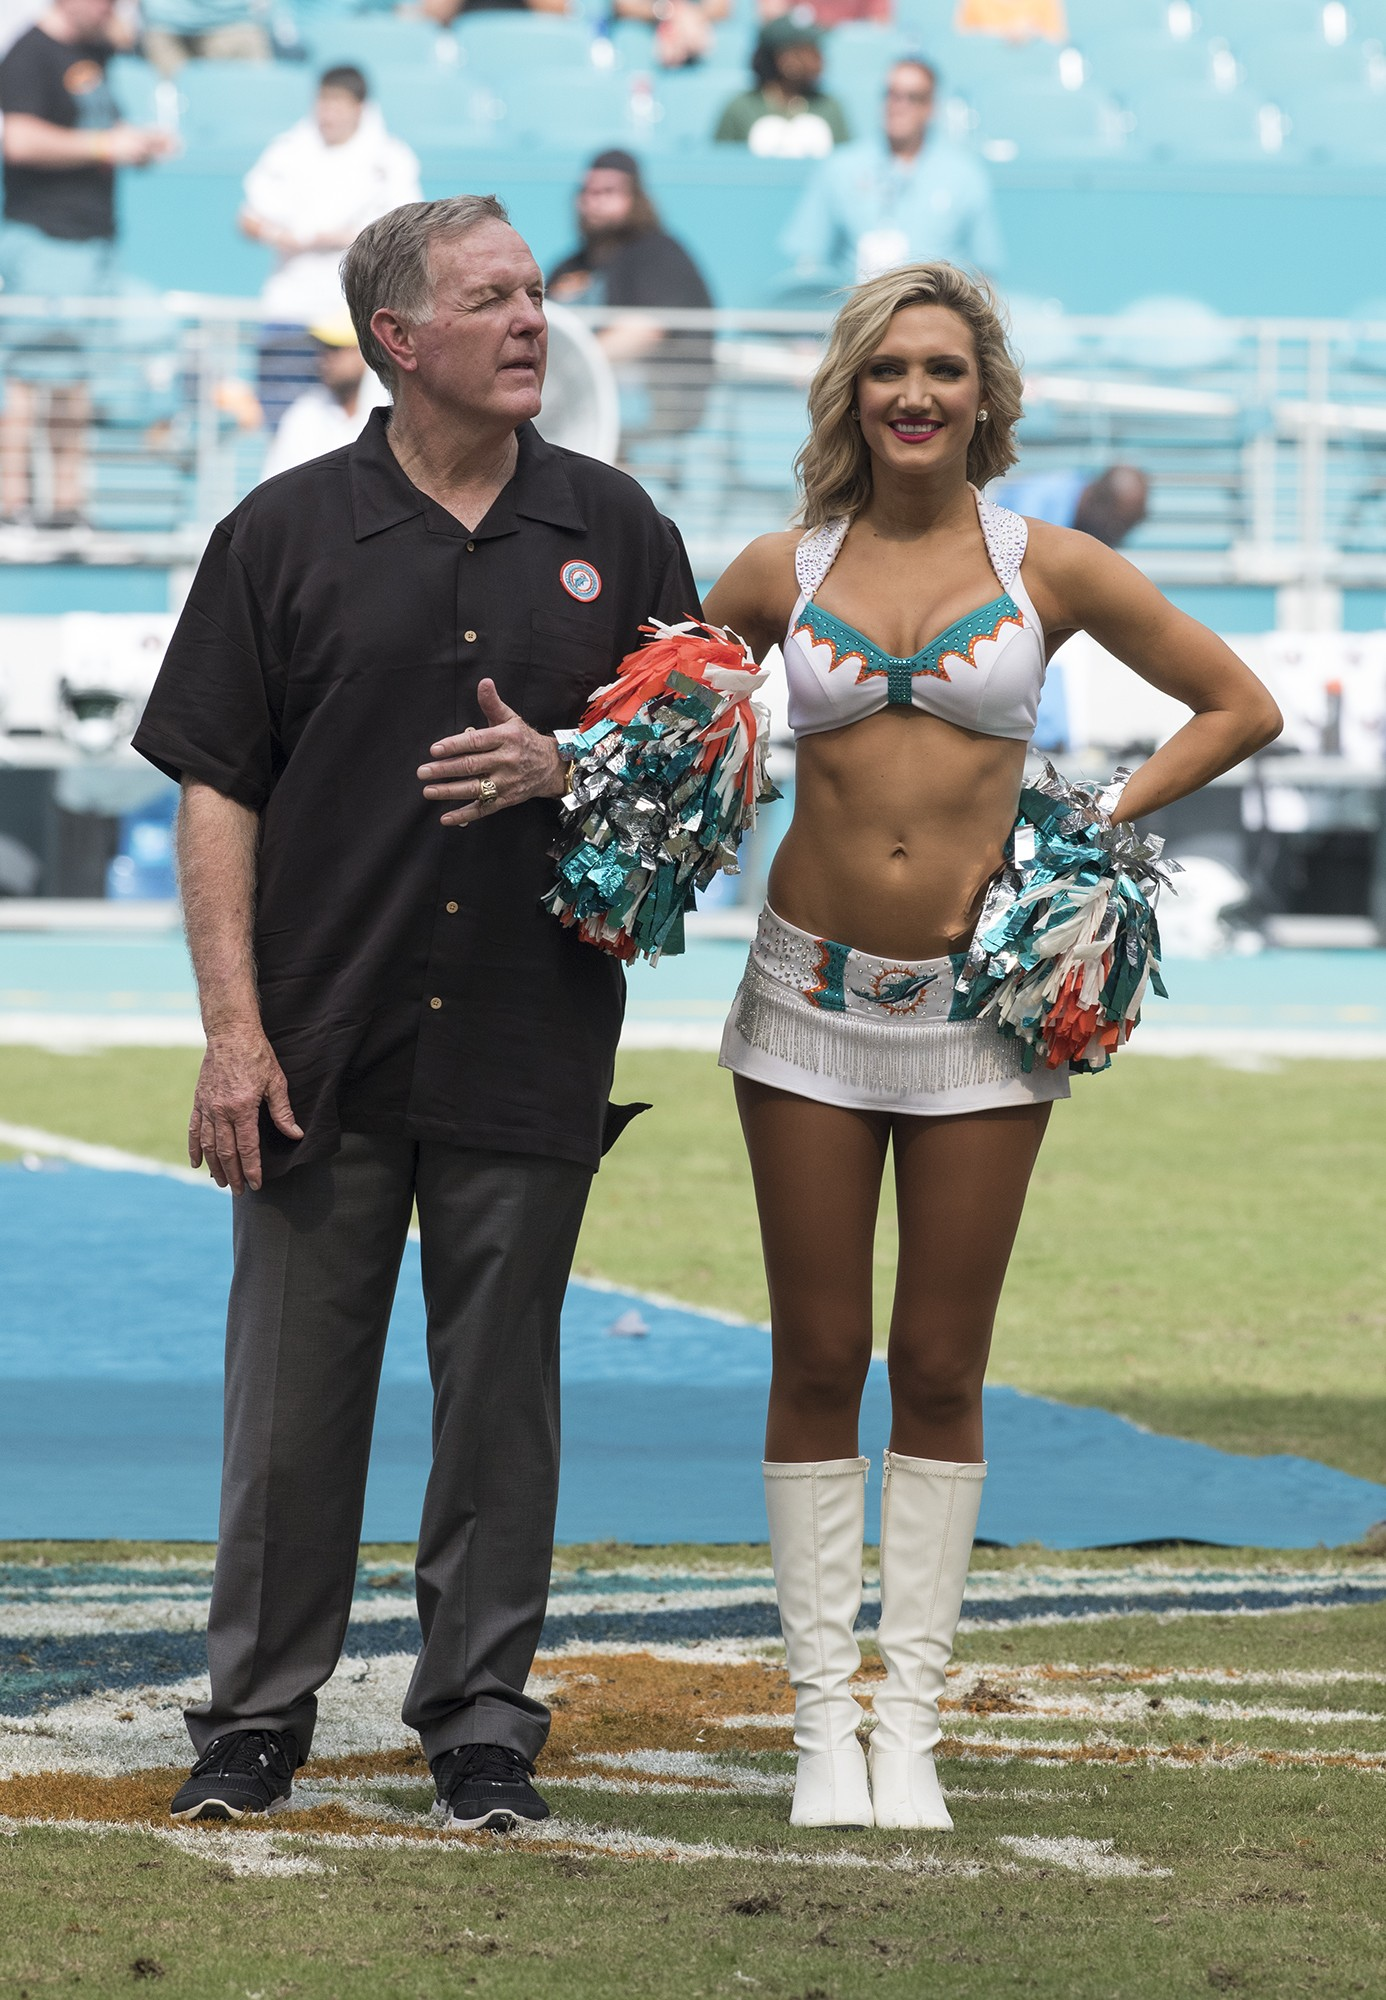 Perfect 72 and Hall of Fame member Bob Griese looks to the big screen as the Perfect 72 team is honored during half time of the New York Jets and Miami Dolphins game on Sunday, Oct. 22, 2017, in Miami Gardens, Fla. (Donald Edgar/El Latino Digital)